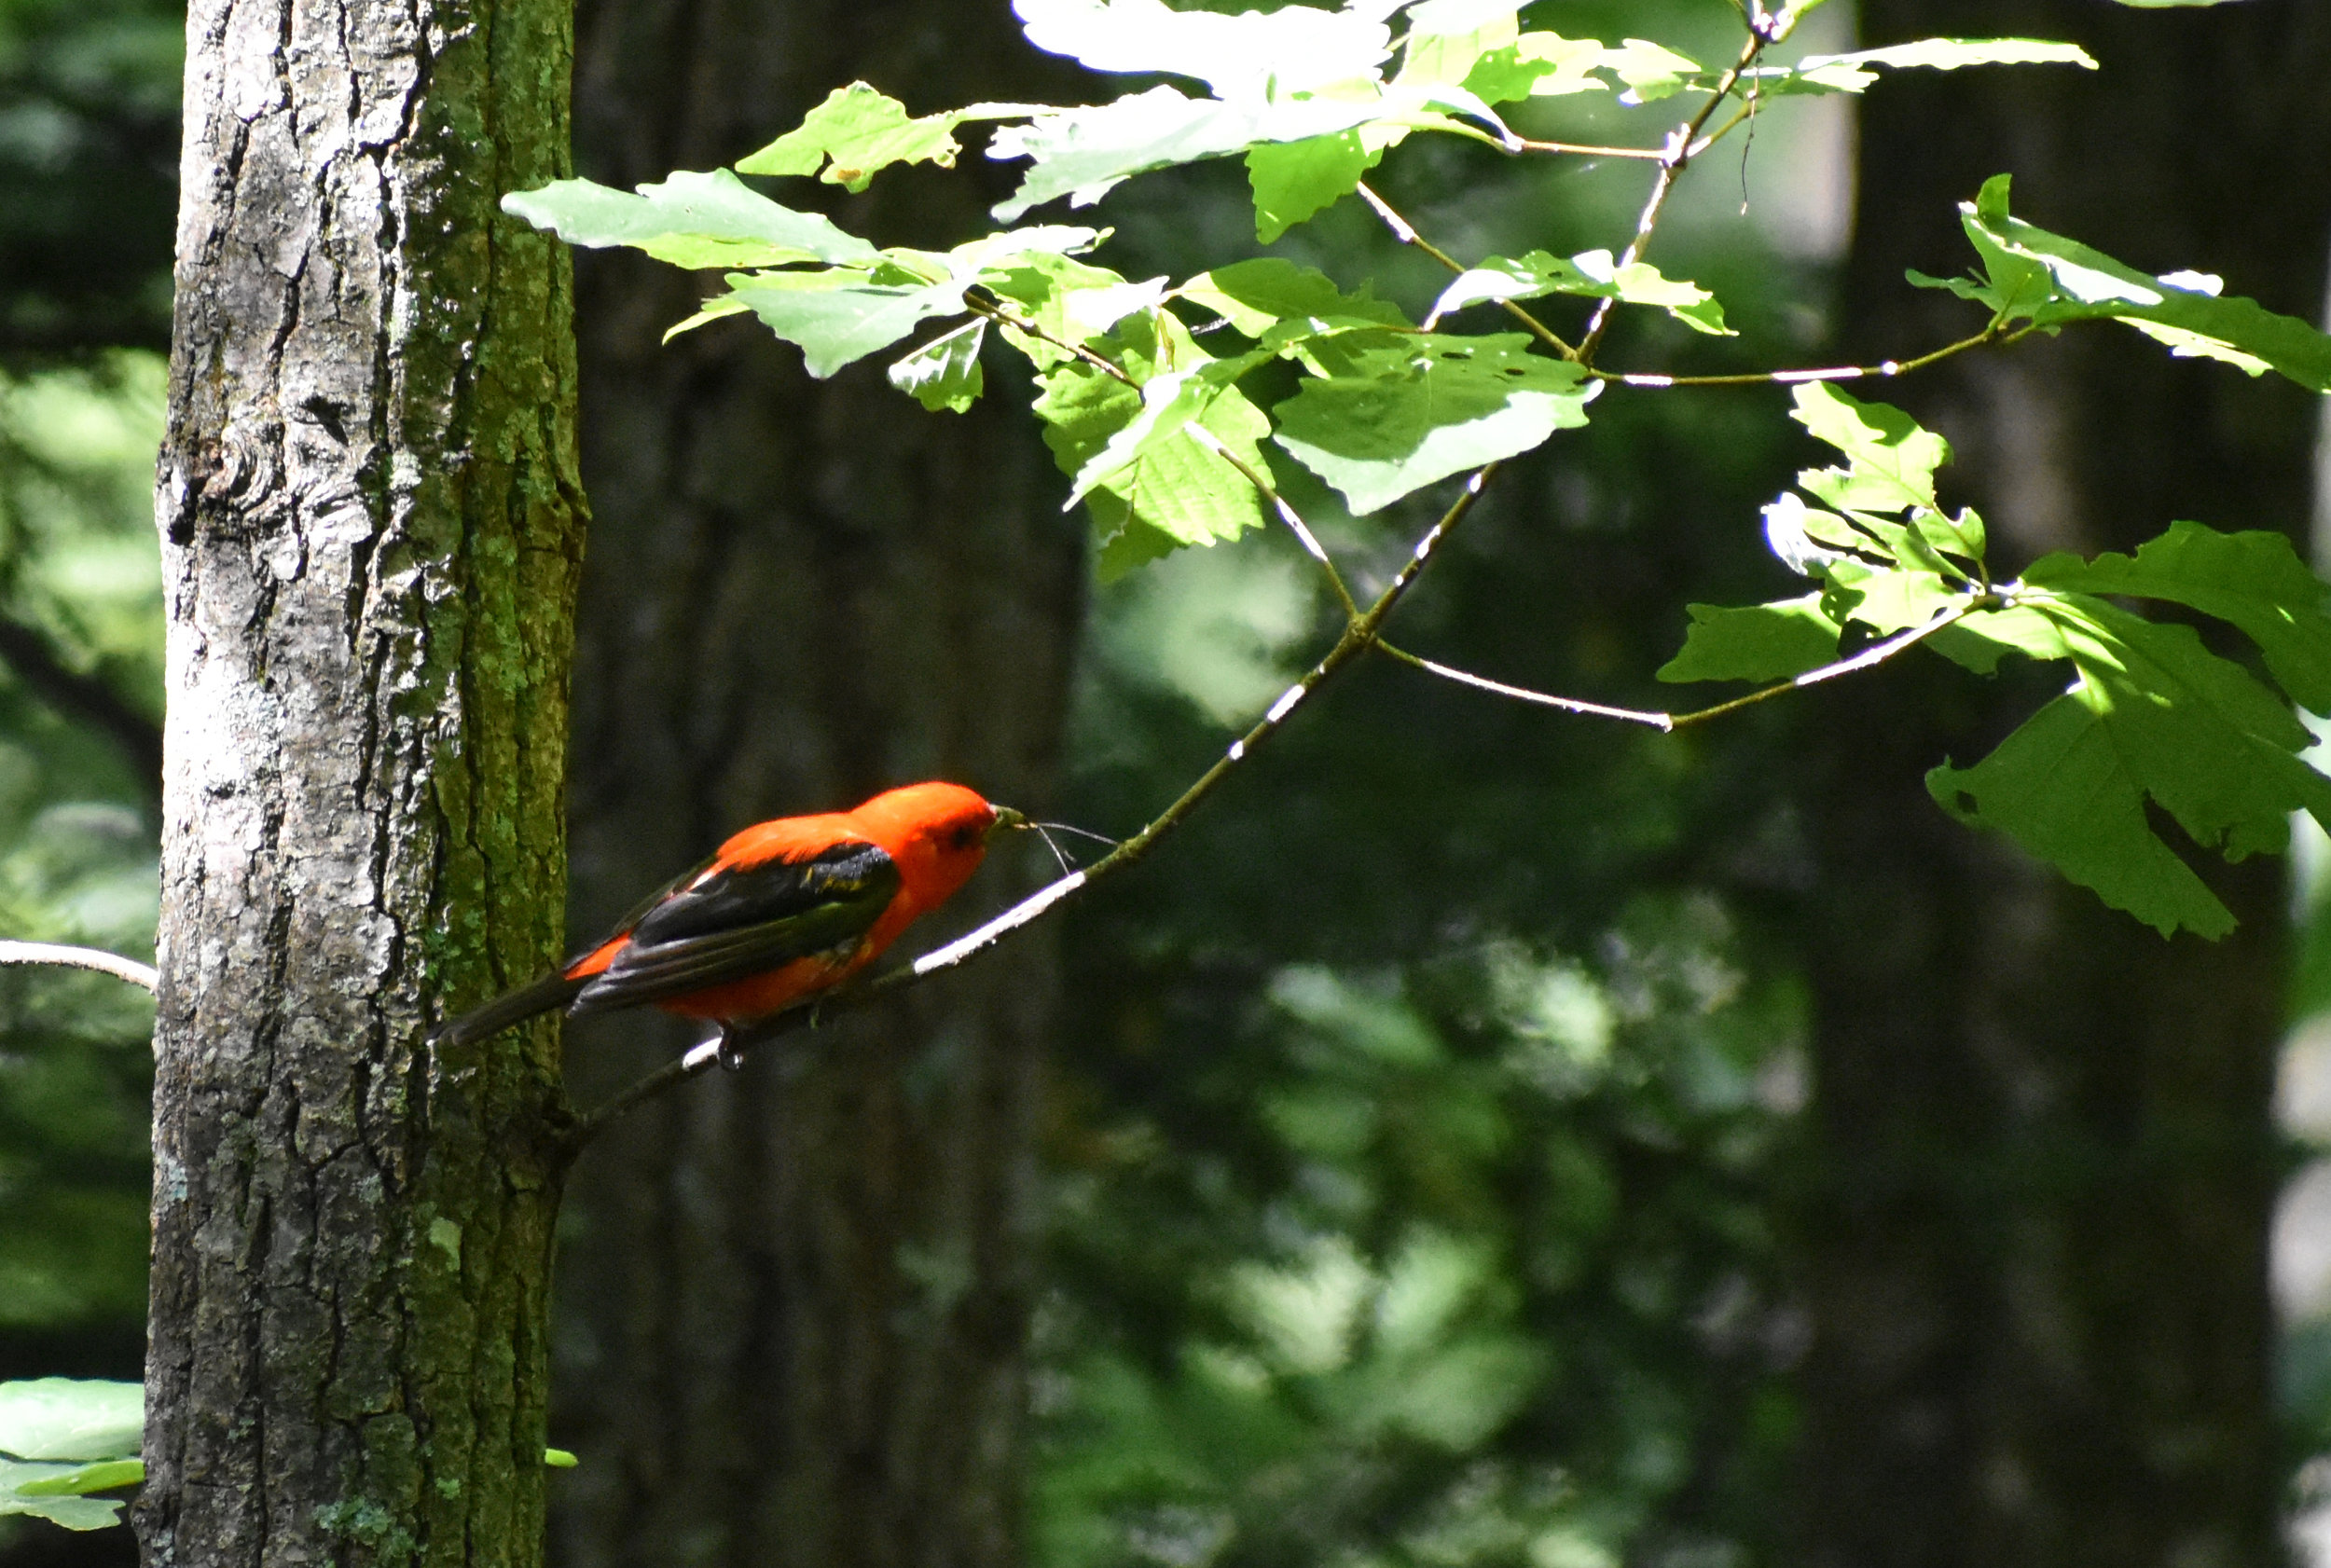 Scarlet Tanager stealing from spider web in Chestnut Oak